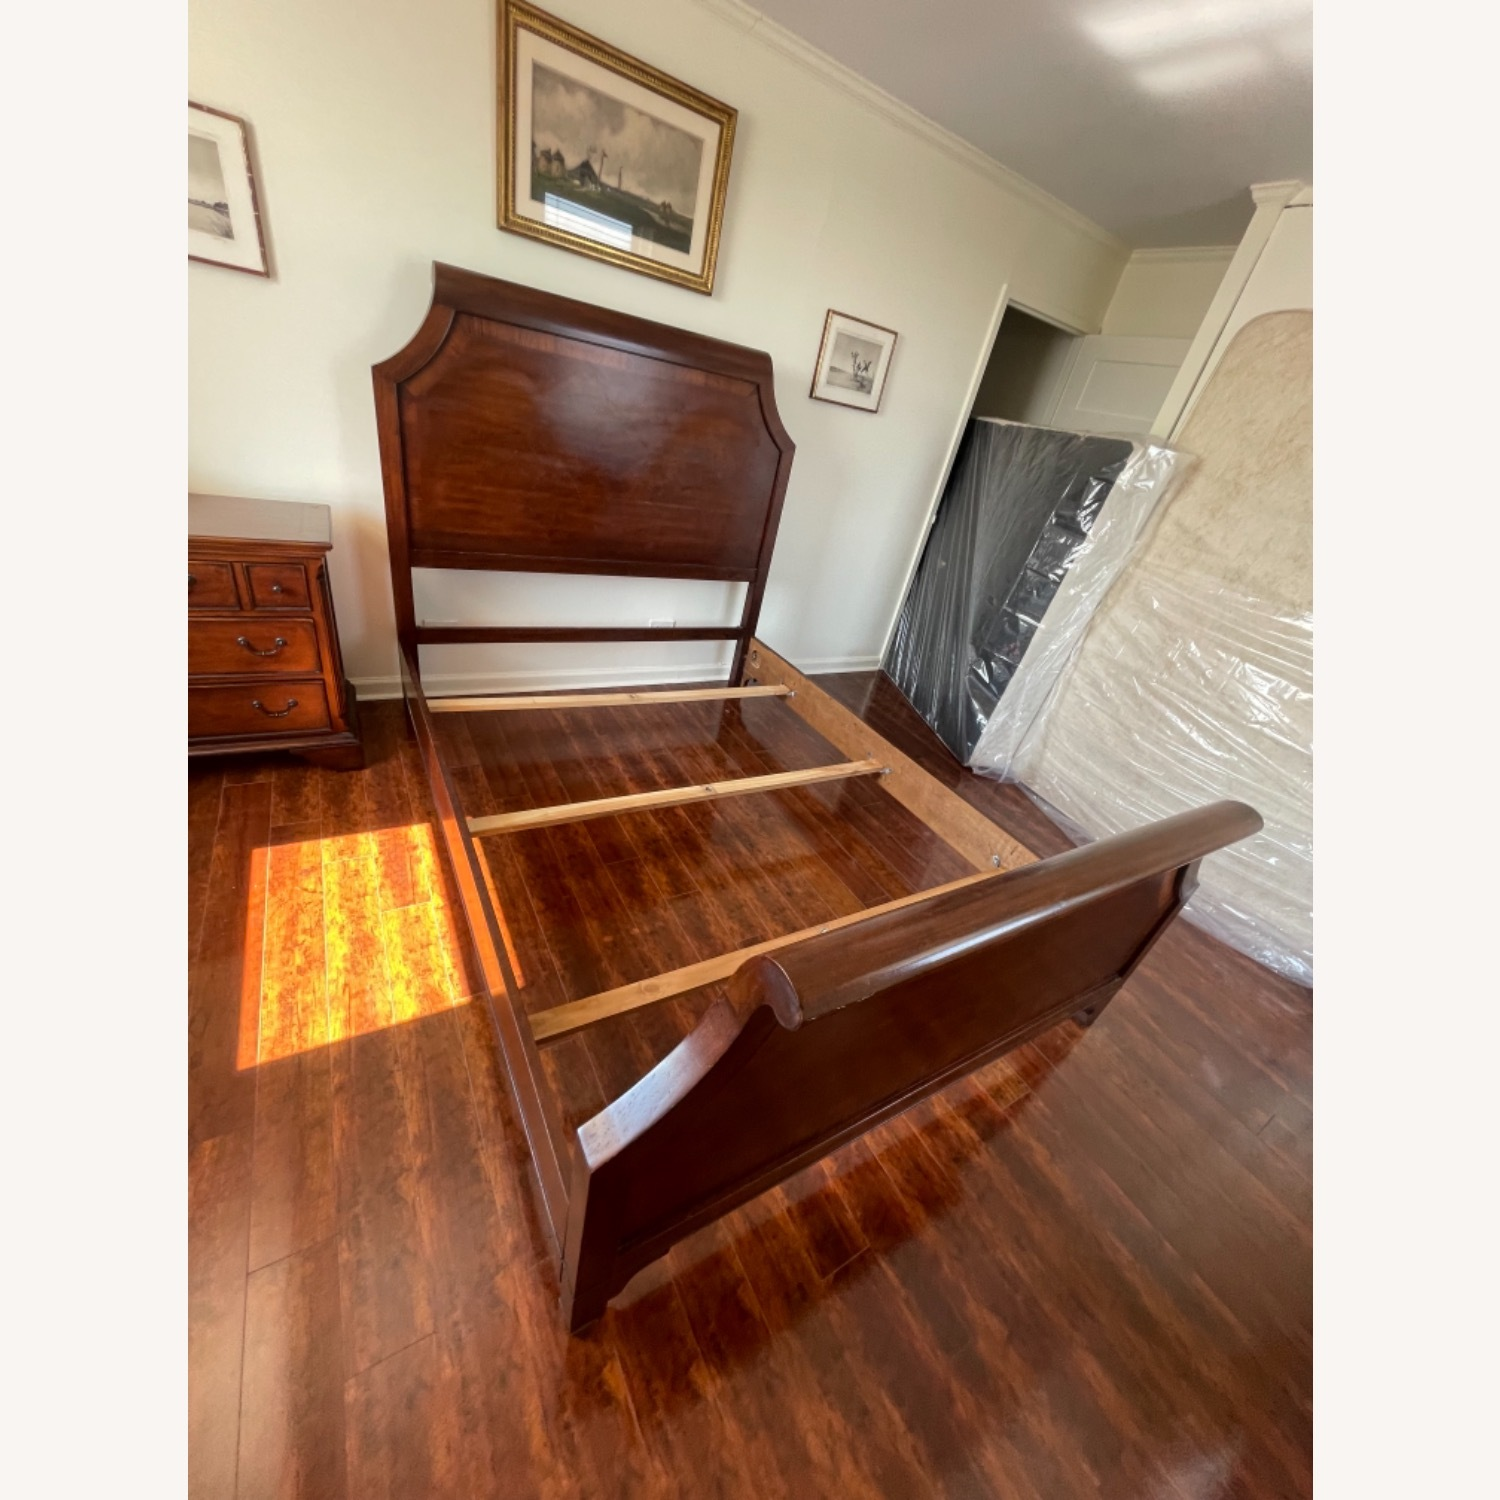 Sold Wood Inlaid Queen Size Bed - image-16